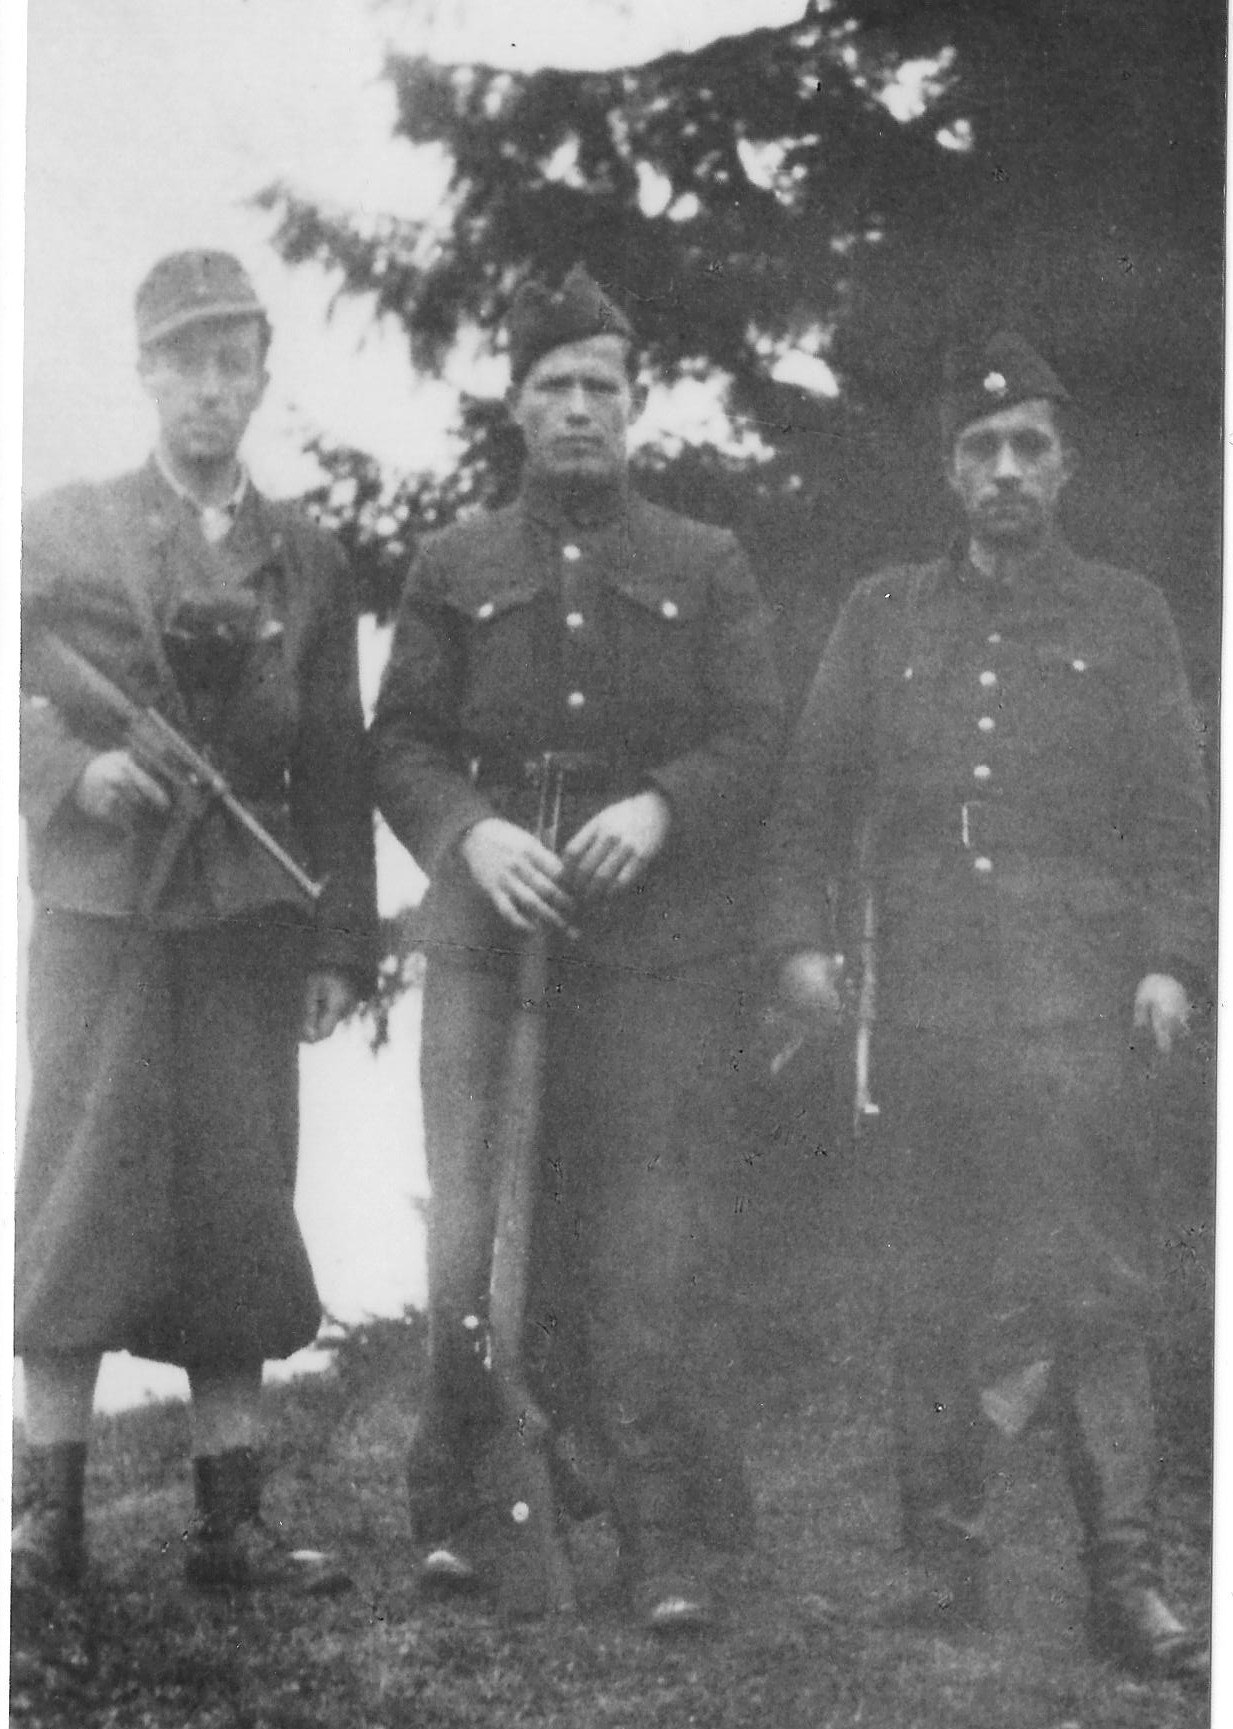 Photo:   Adam Hubiszta ps Łoś, Władysław Kępa  ps Ferdek and Jósef Sojka  ps Soika in 1944